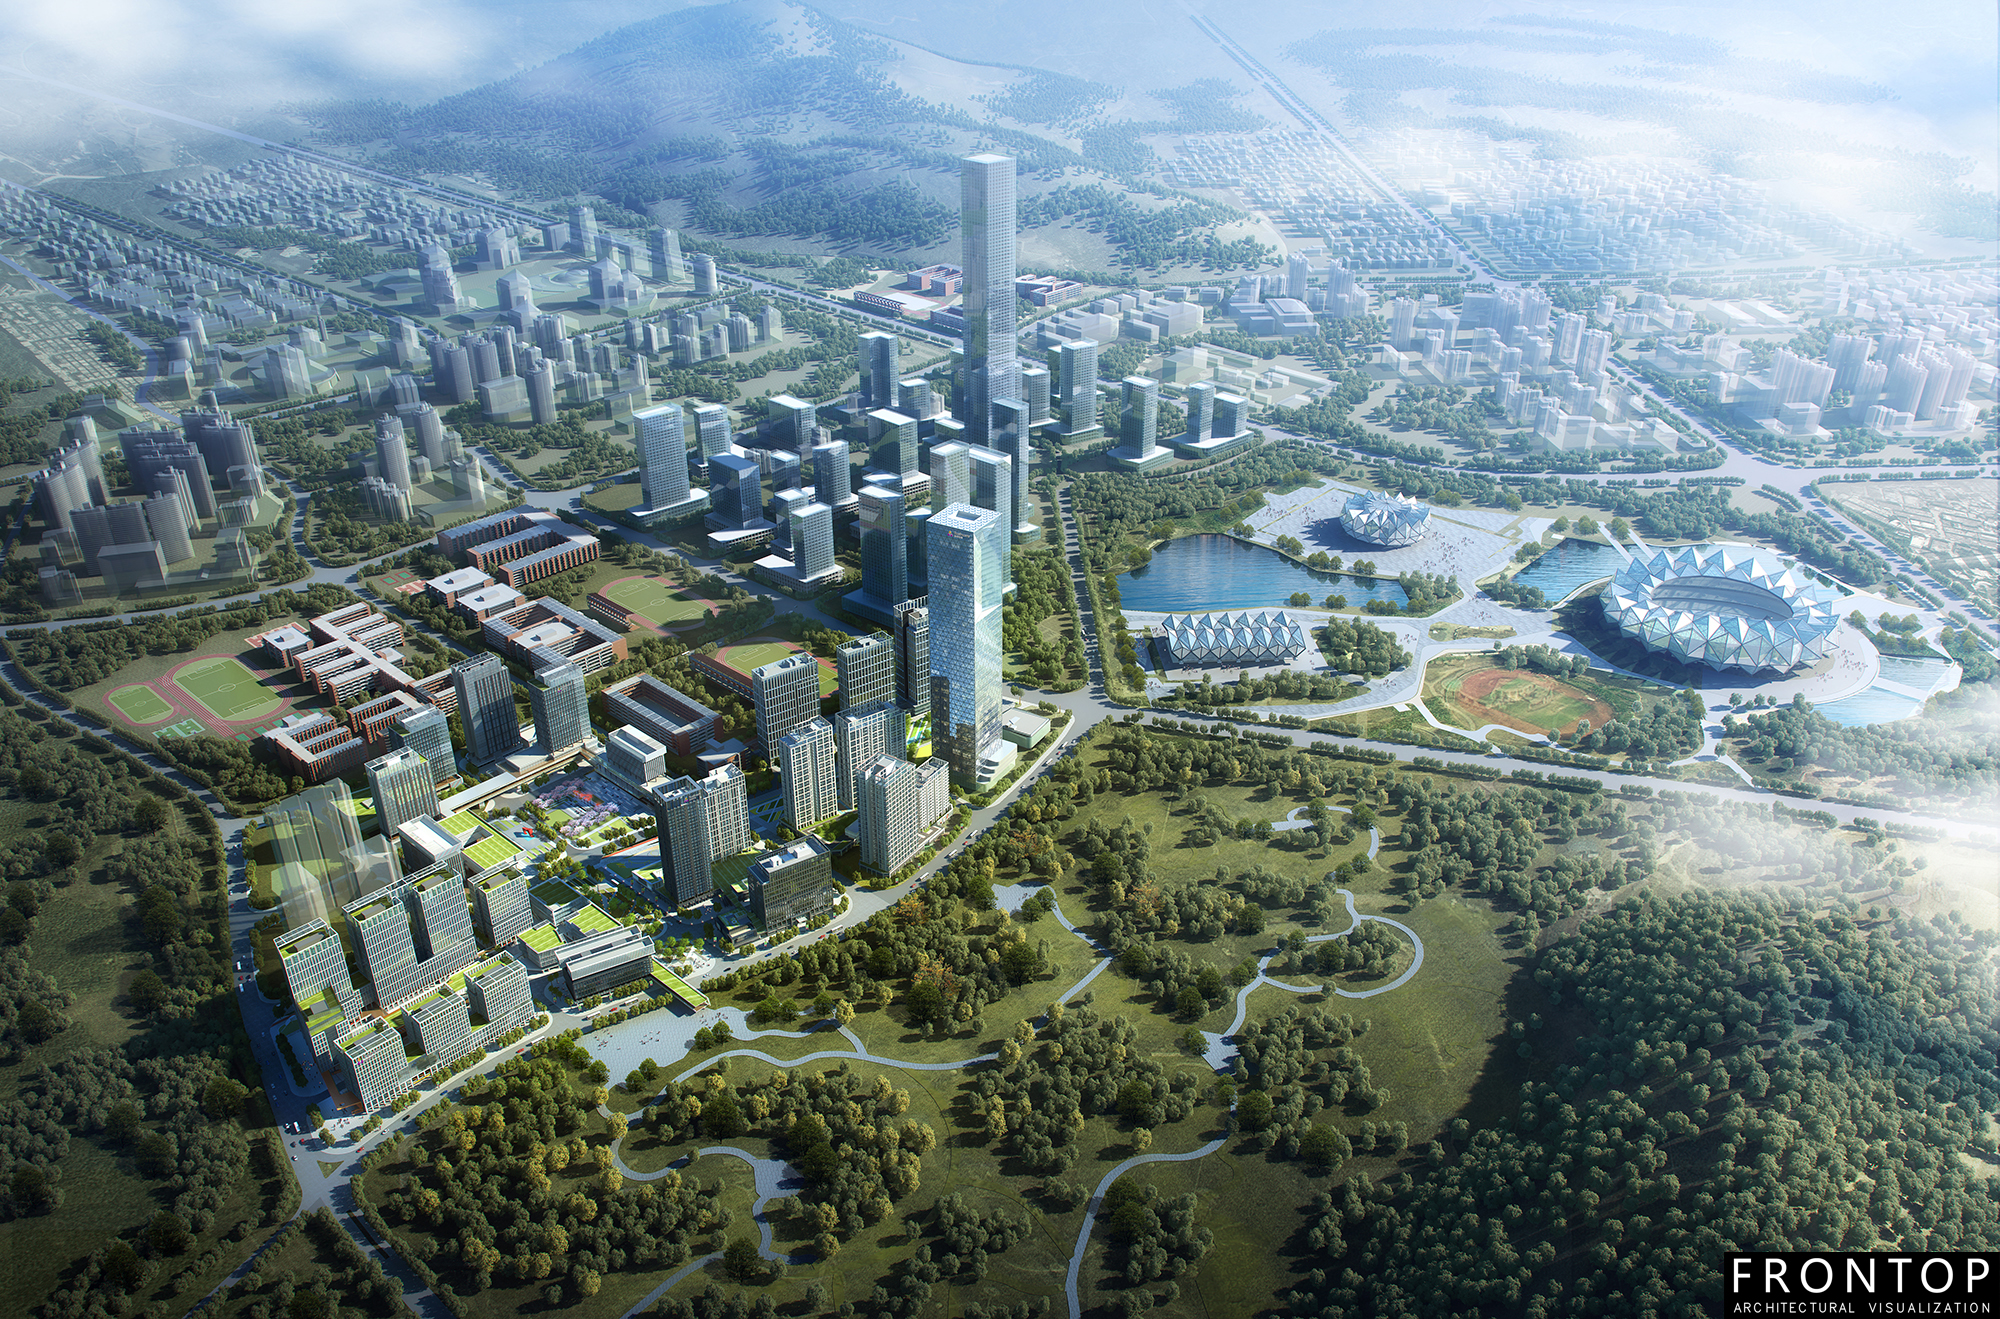 High Quality Architectural Rendering - Qidi Xiexin Science Park – Frontop